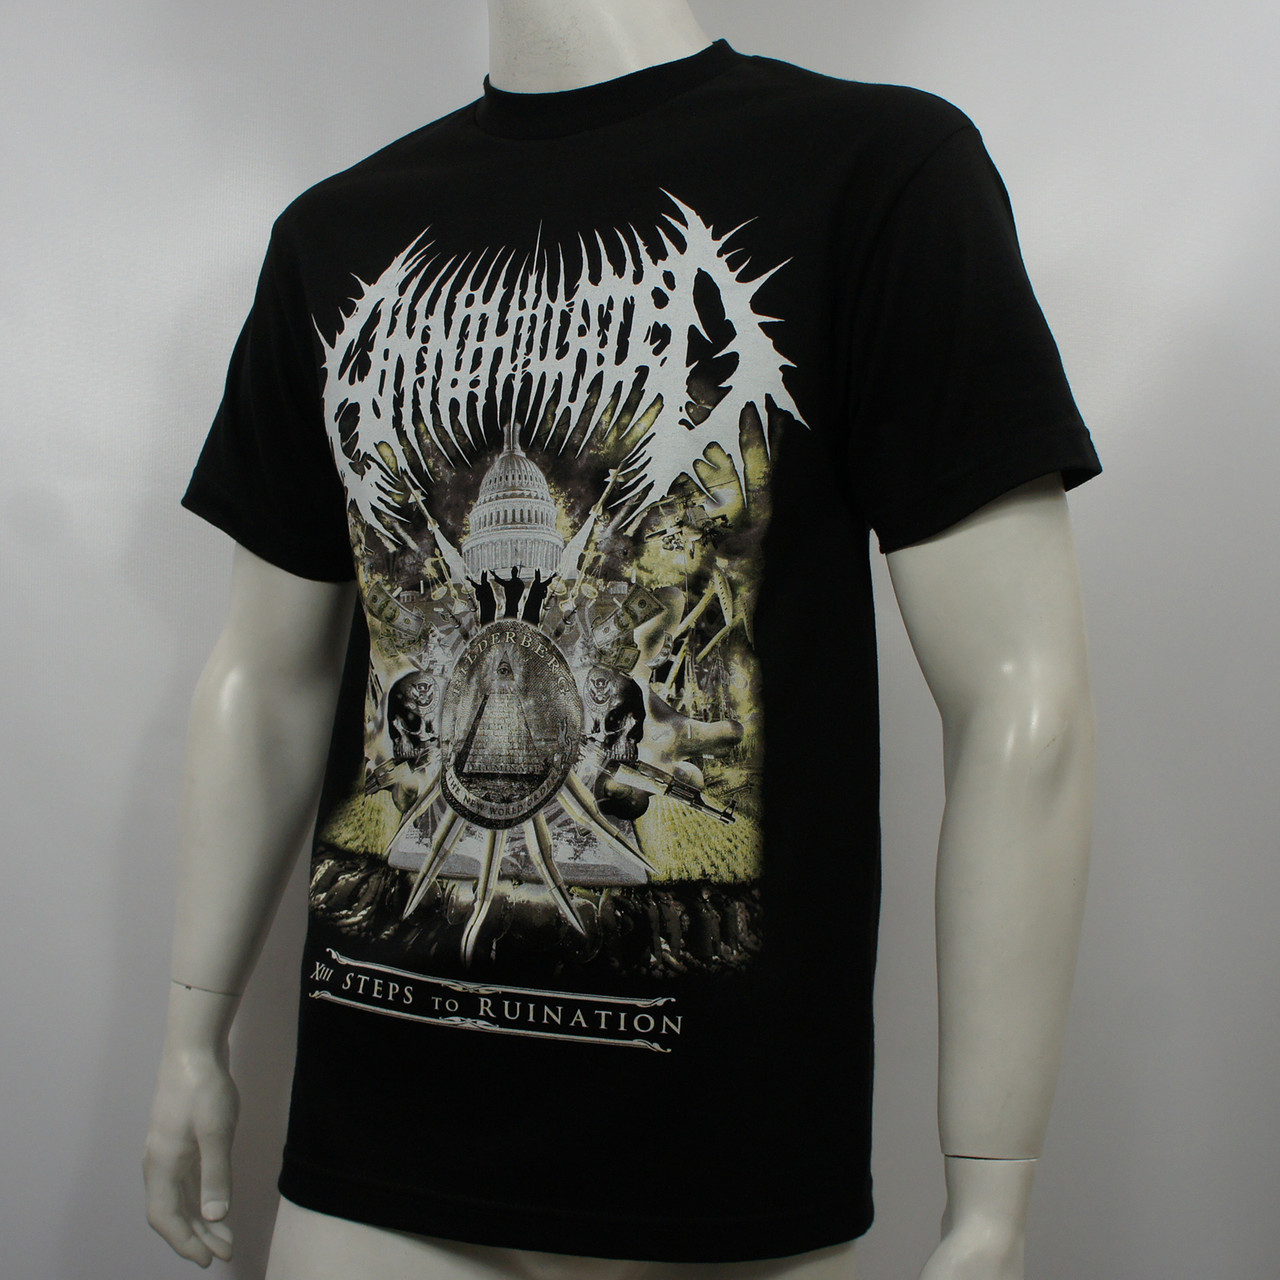 http://d3d71ba2asa5oz.cloudfront.net/12013655/images/2820-annihalator-xiii-steps-to-ruination-t-shirt-black-(3).jpg